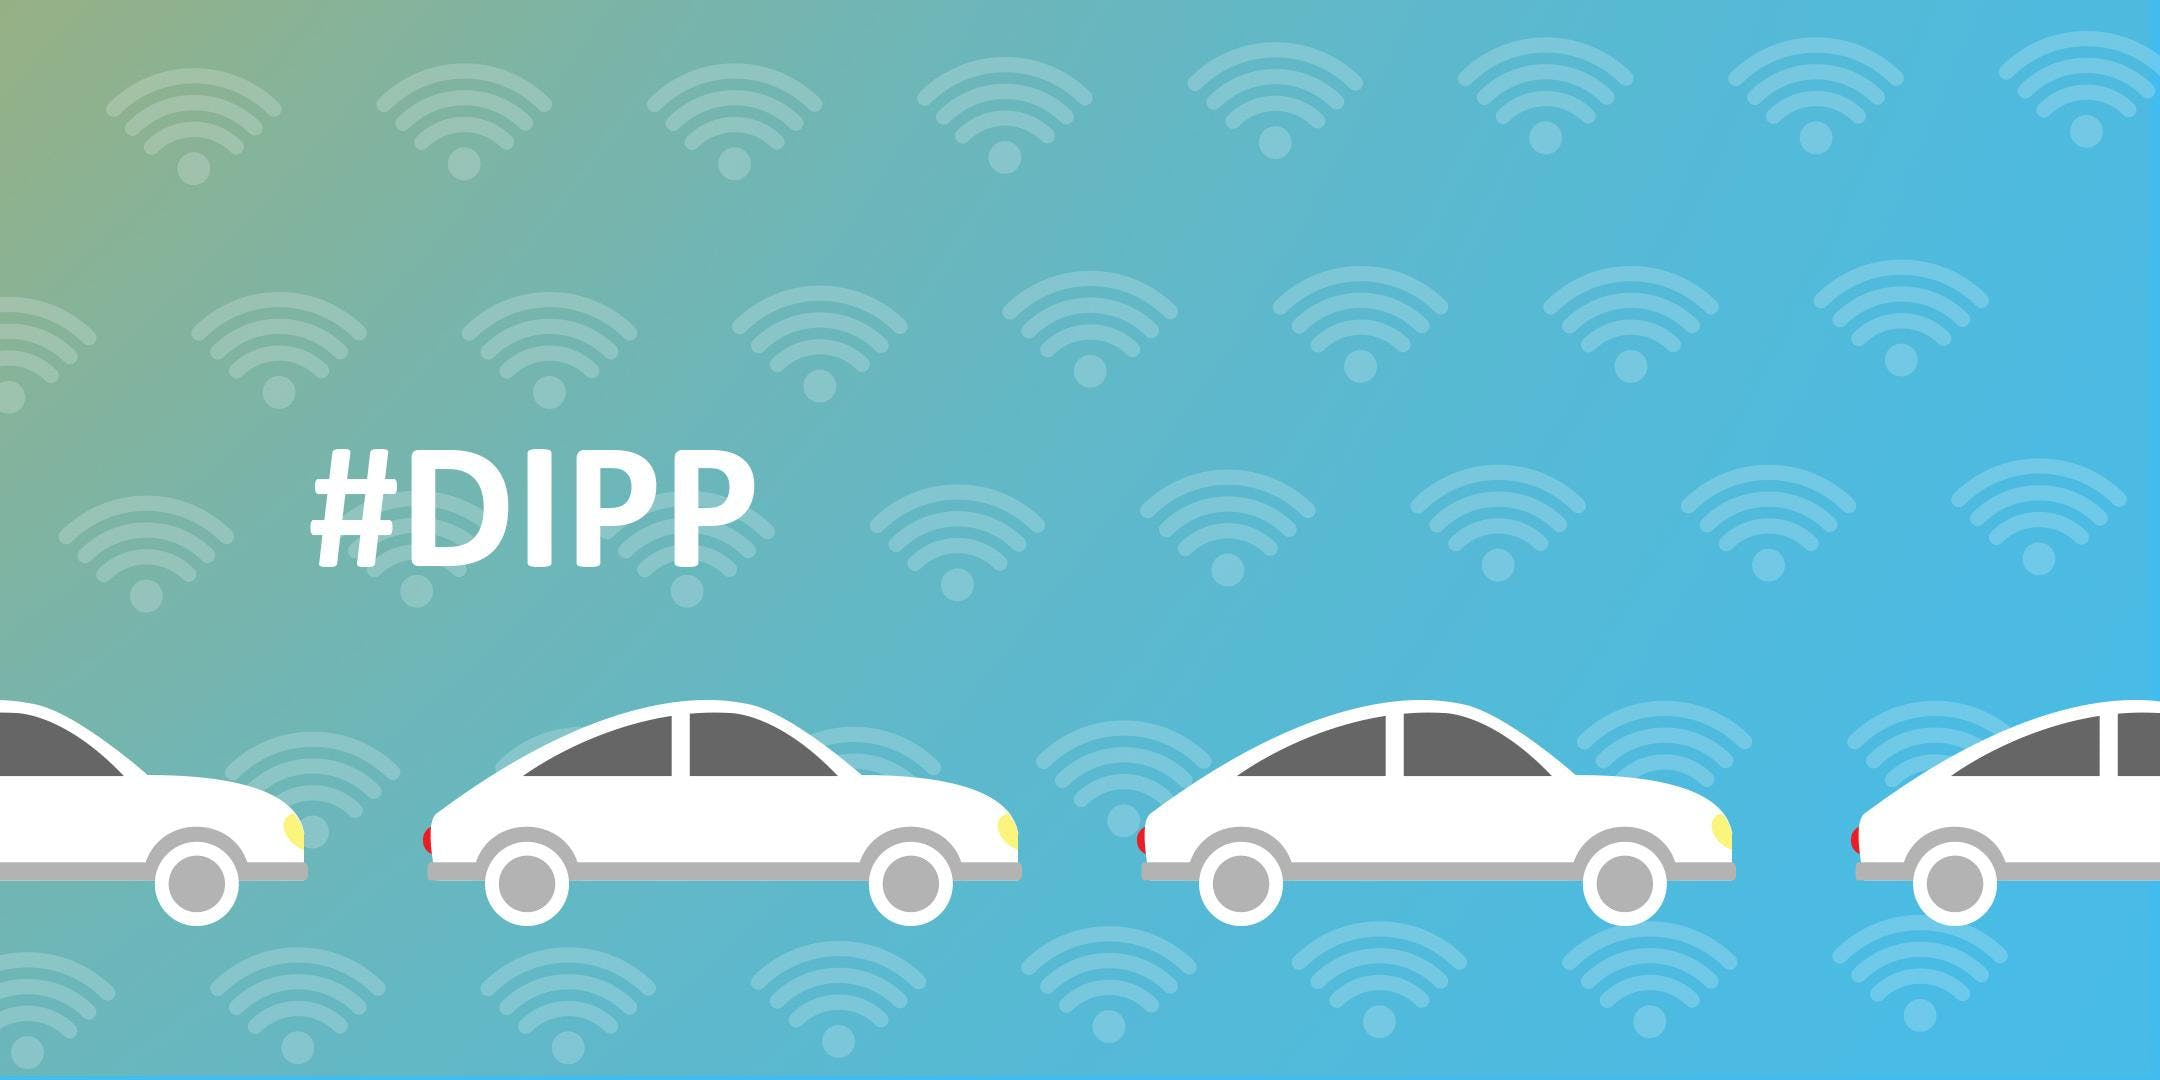 DiPP - Smart mobility: has the revolution stalled?